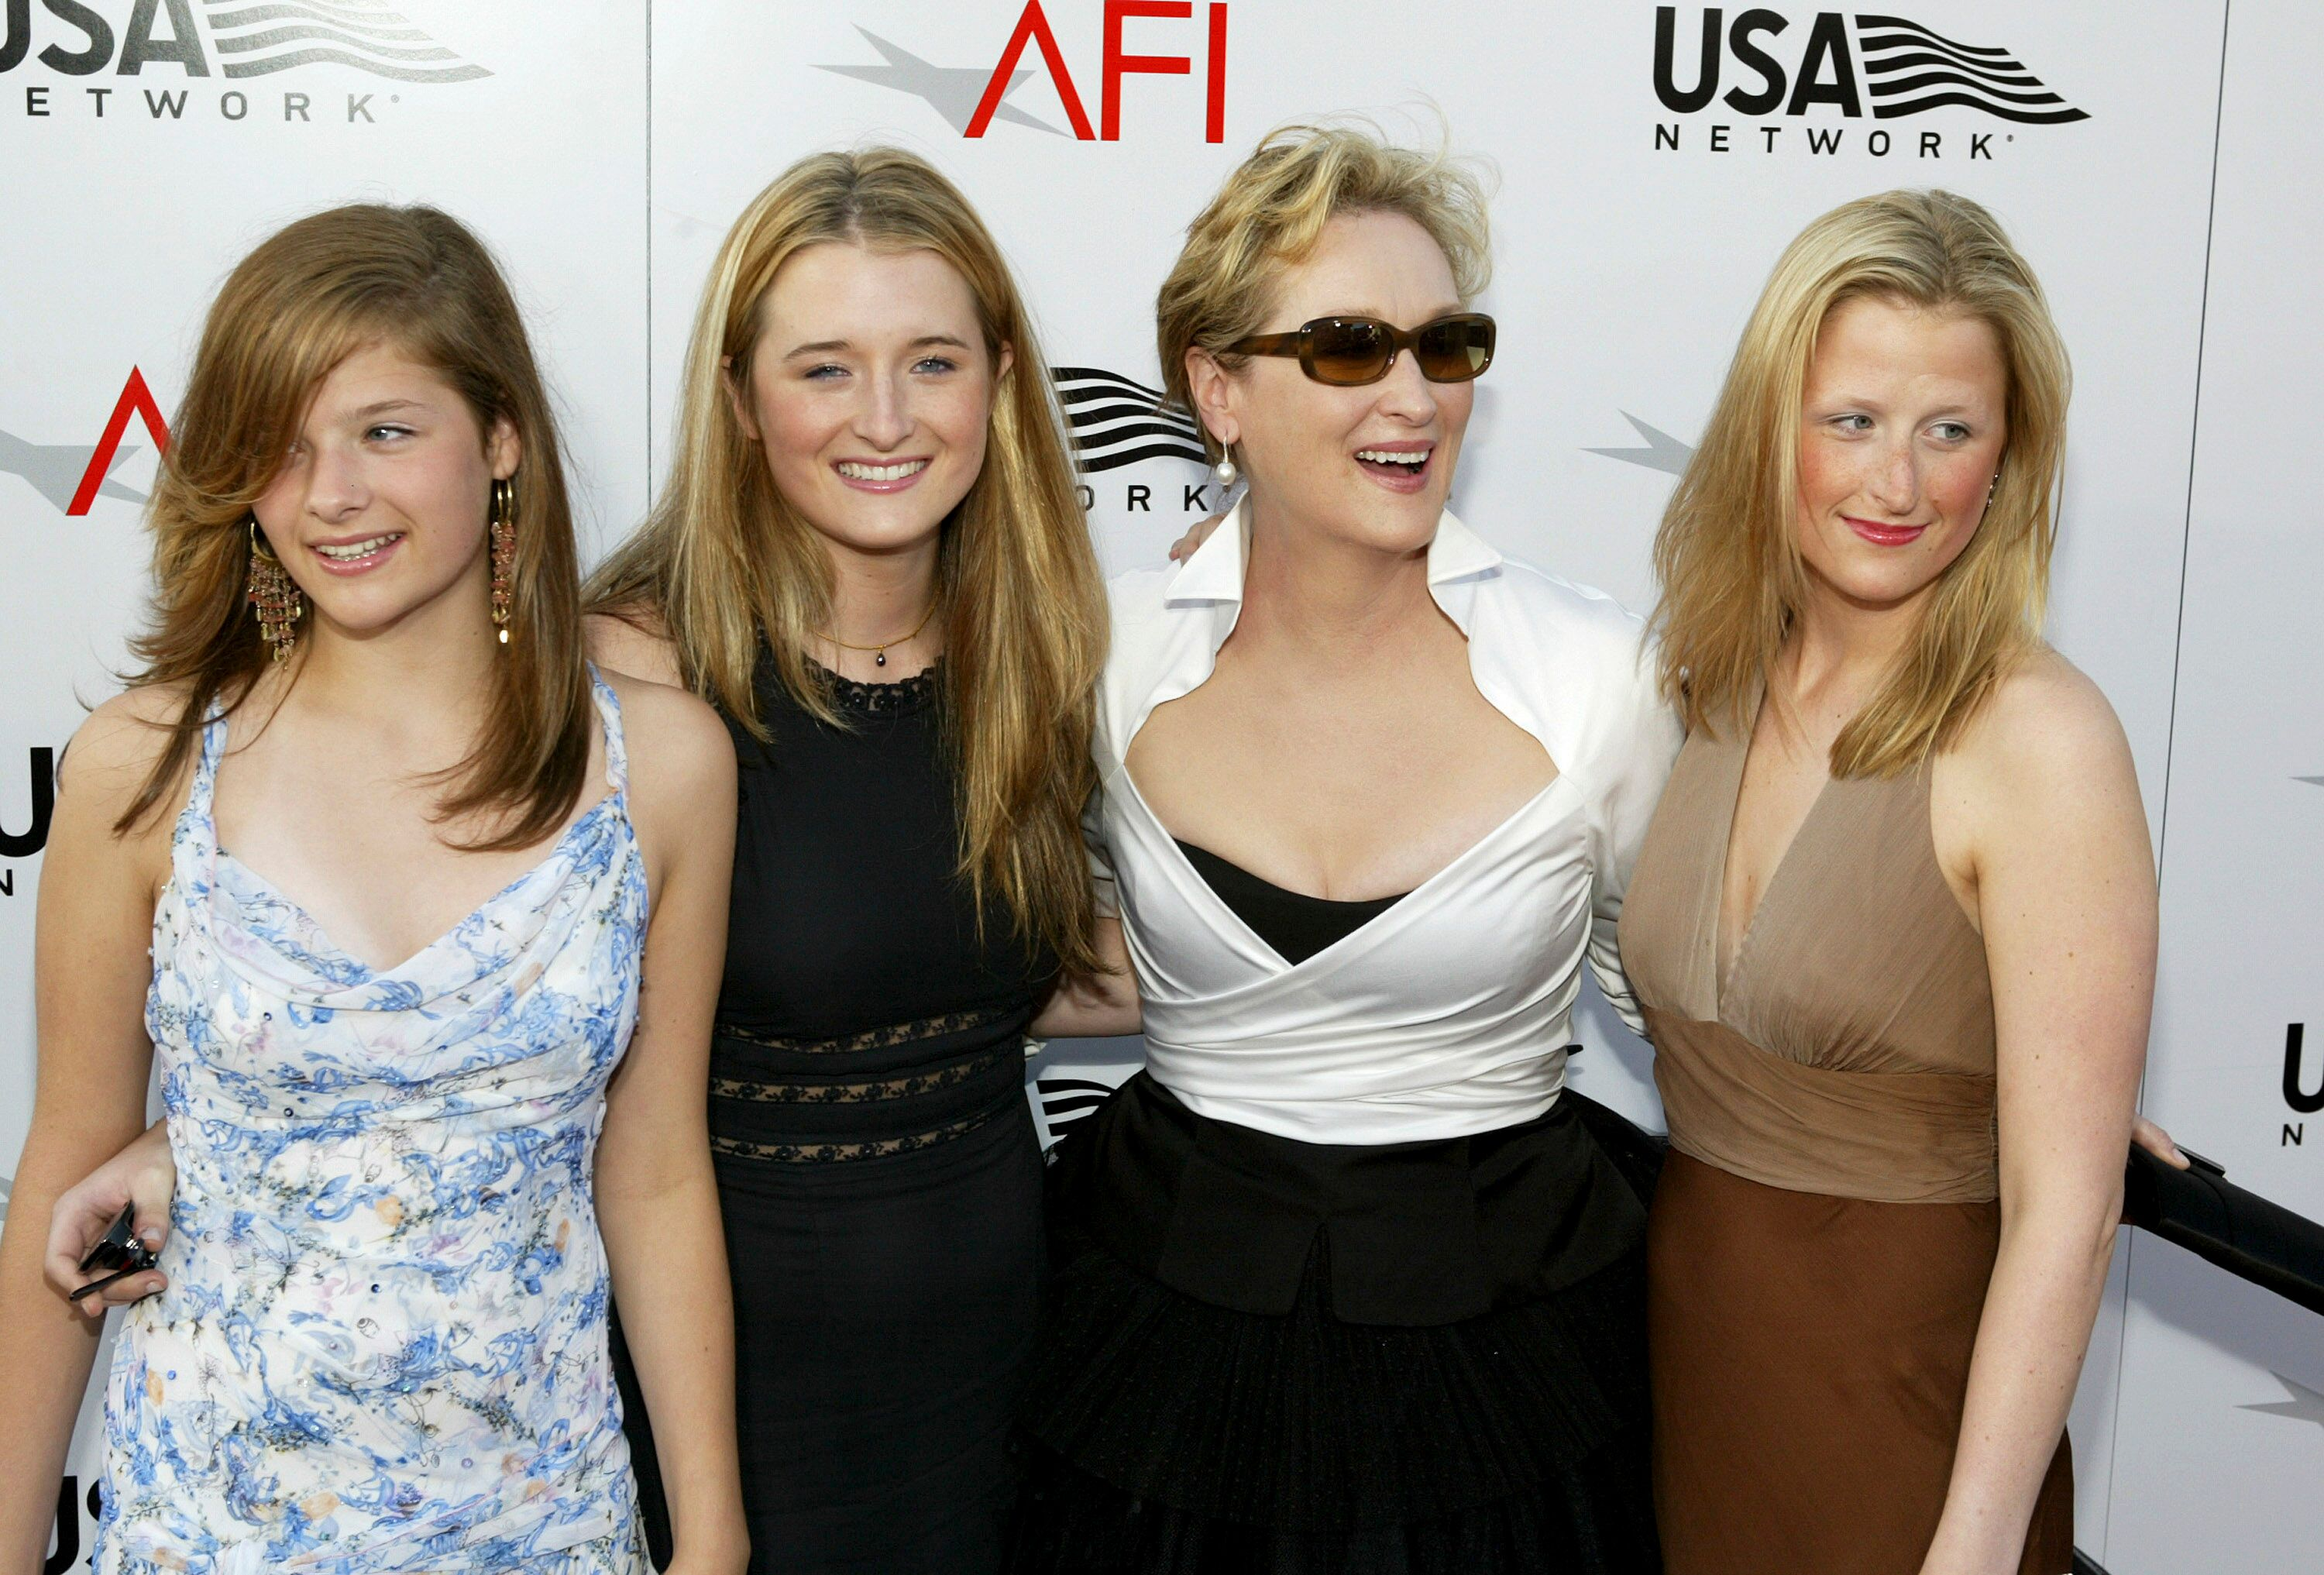 Meryl Streep and her daughters attend the 32nd Annual AFI Life Achievement Award. | Source: Getty Images